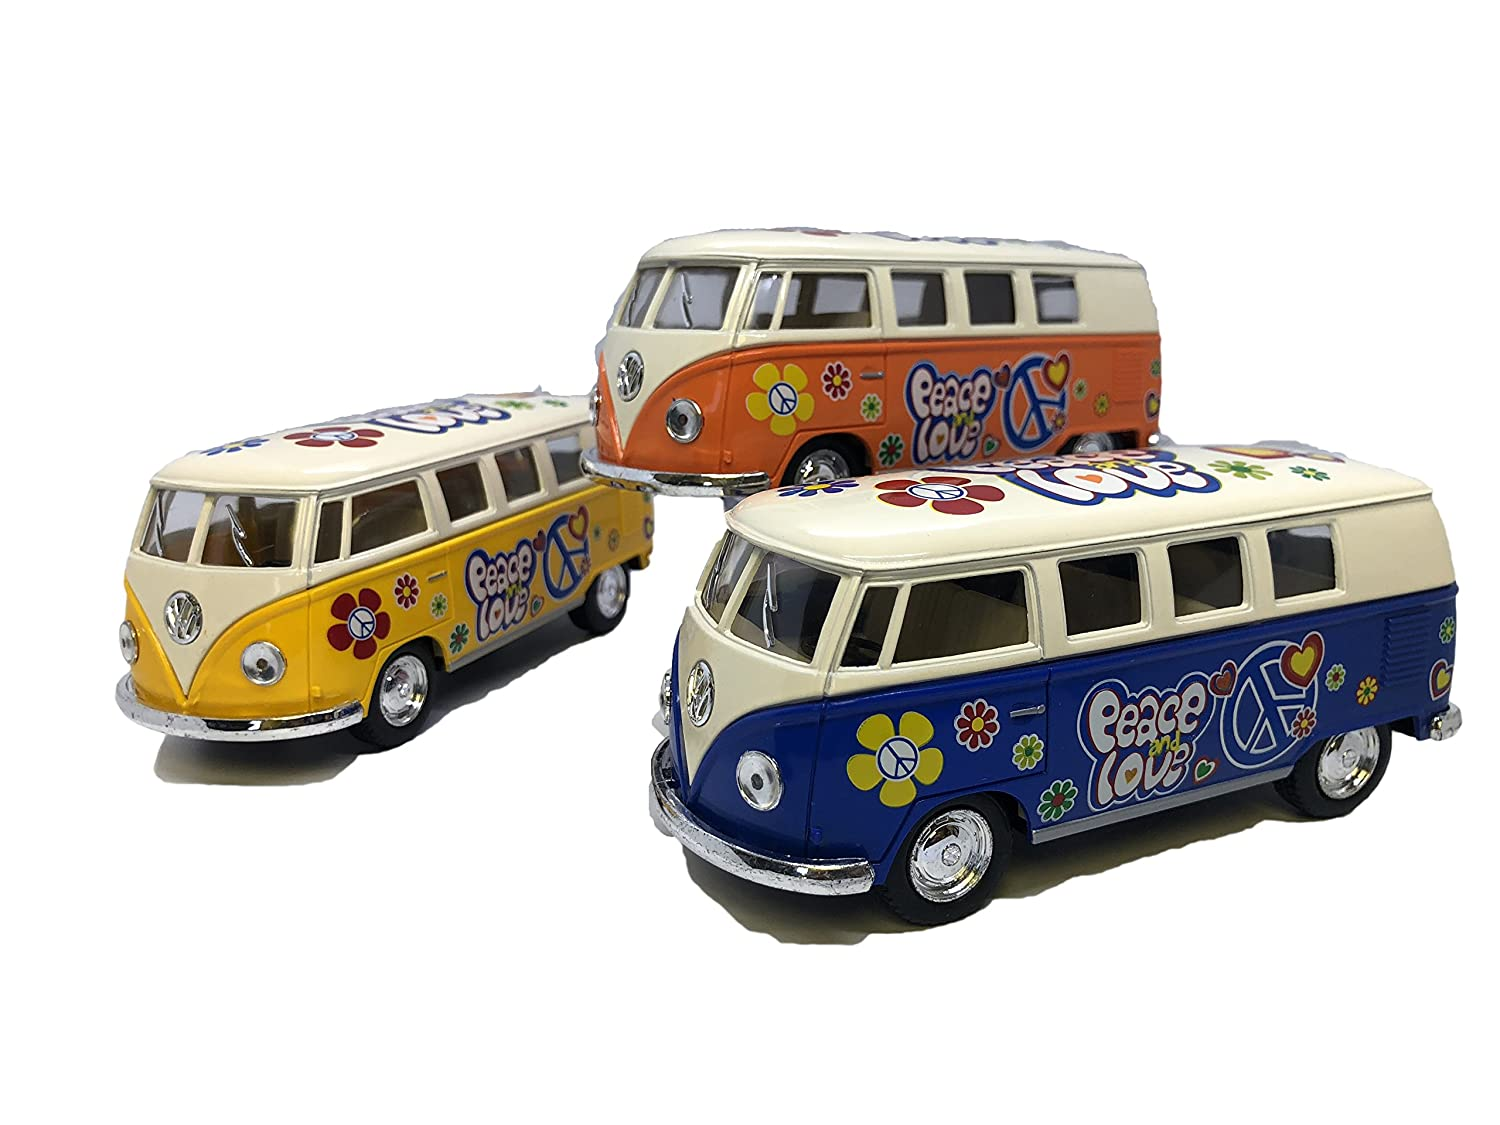 2019年最新海外 マスターおもちゃ1962 Decal of VW Classic Bus with B07FXTJFBF Peace and Love Decal Set of 3 B07FXTJFBF, アキマチ:e60ac02e --- a0267596.xsph.ru